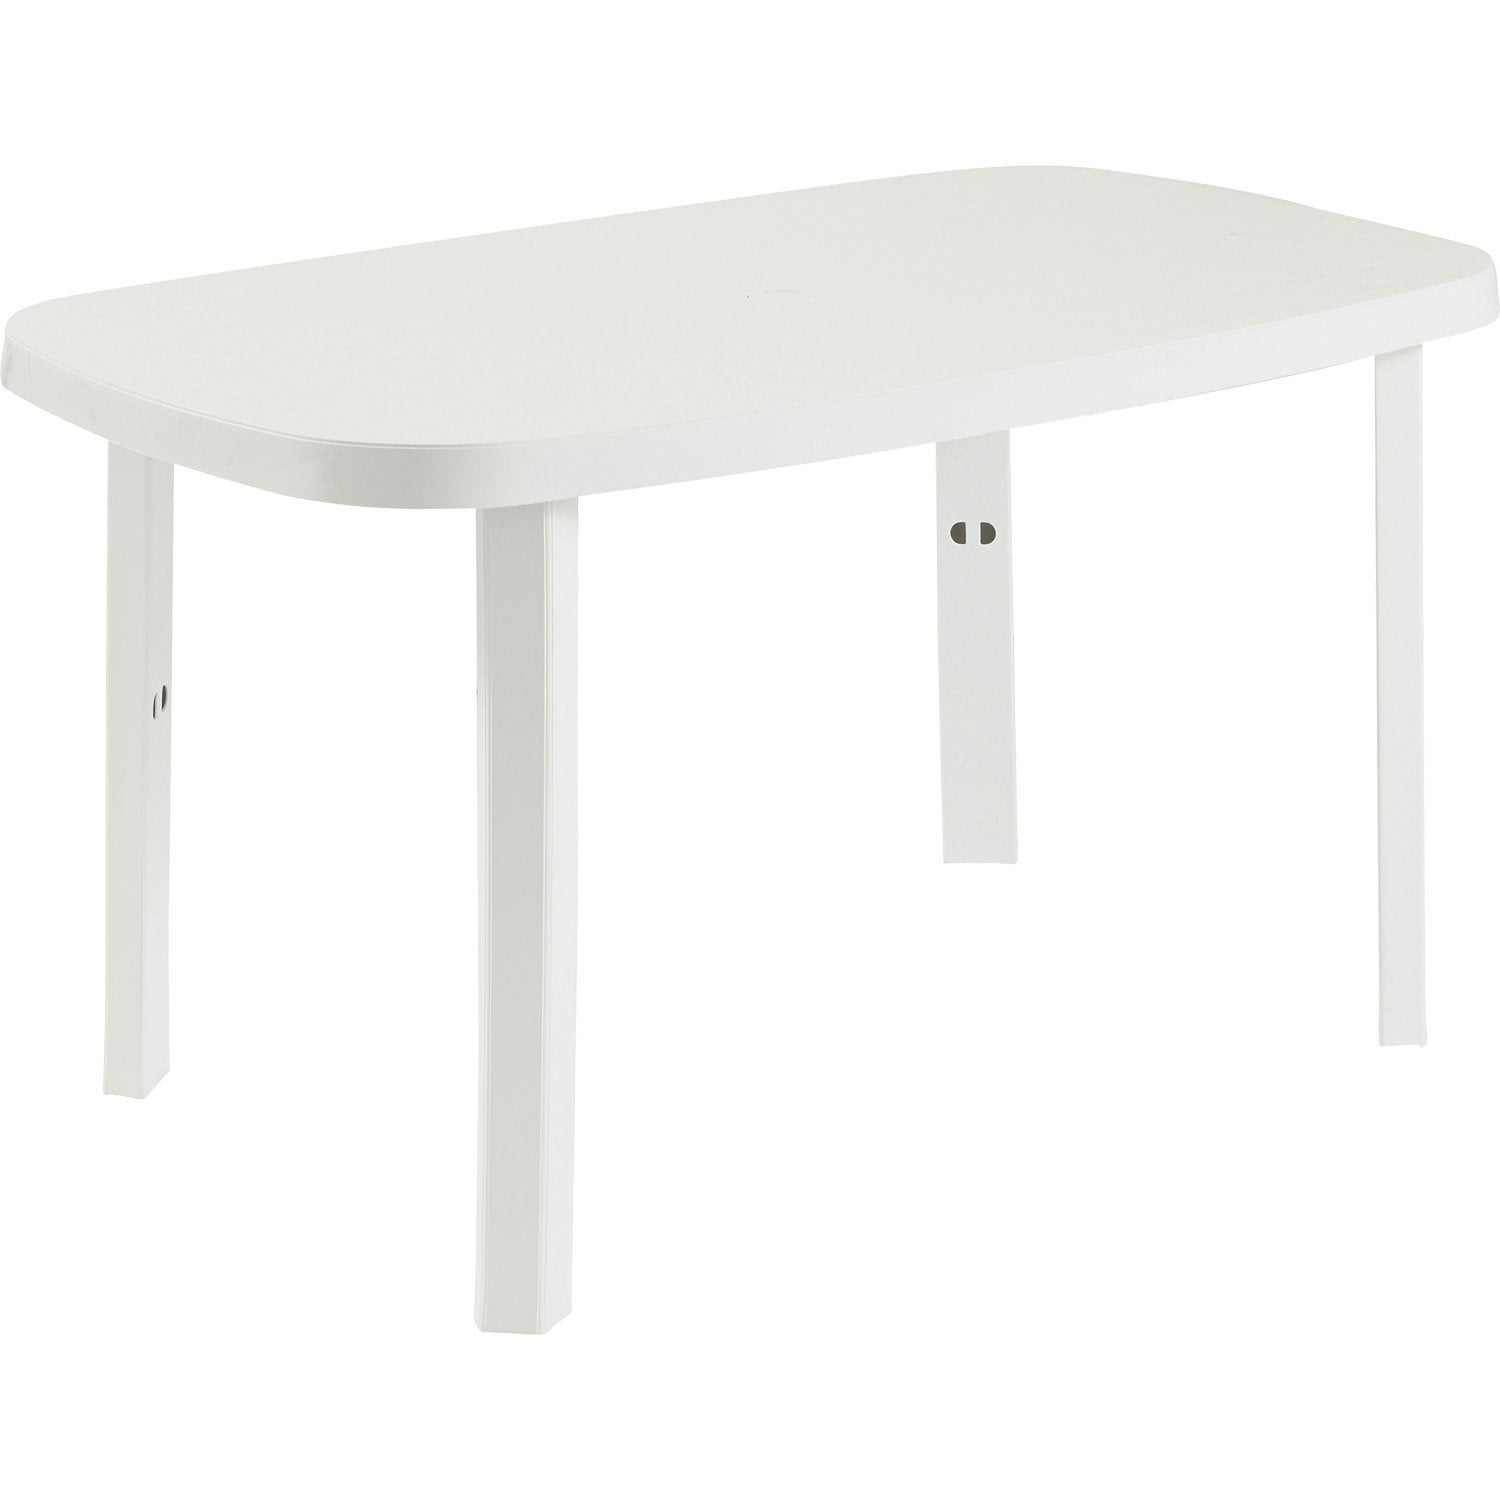 Table de jardin otello ovale blanc 2 personnes leroy merlin for Table de cuisine pliante leroy merlin